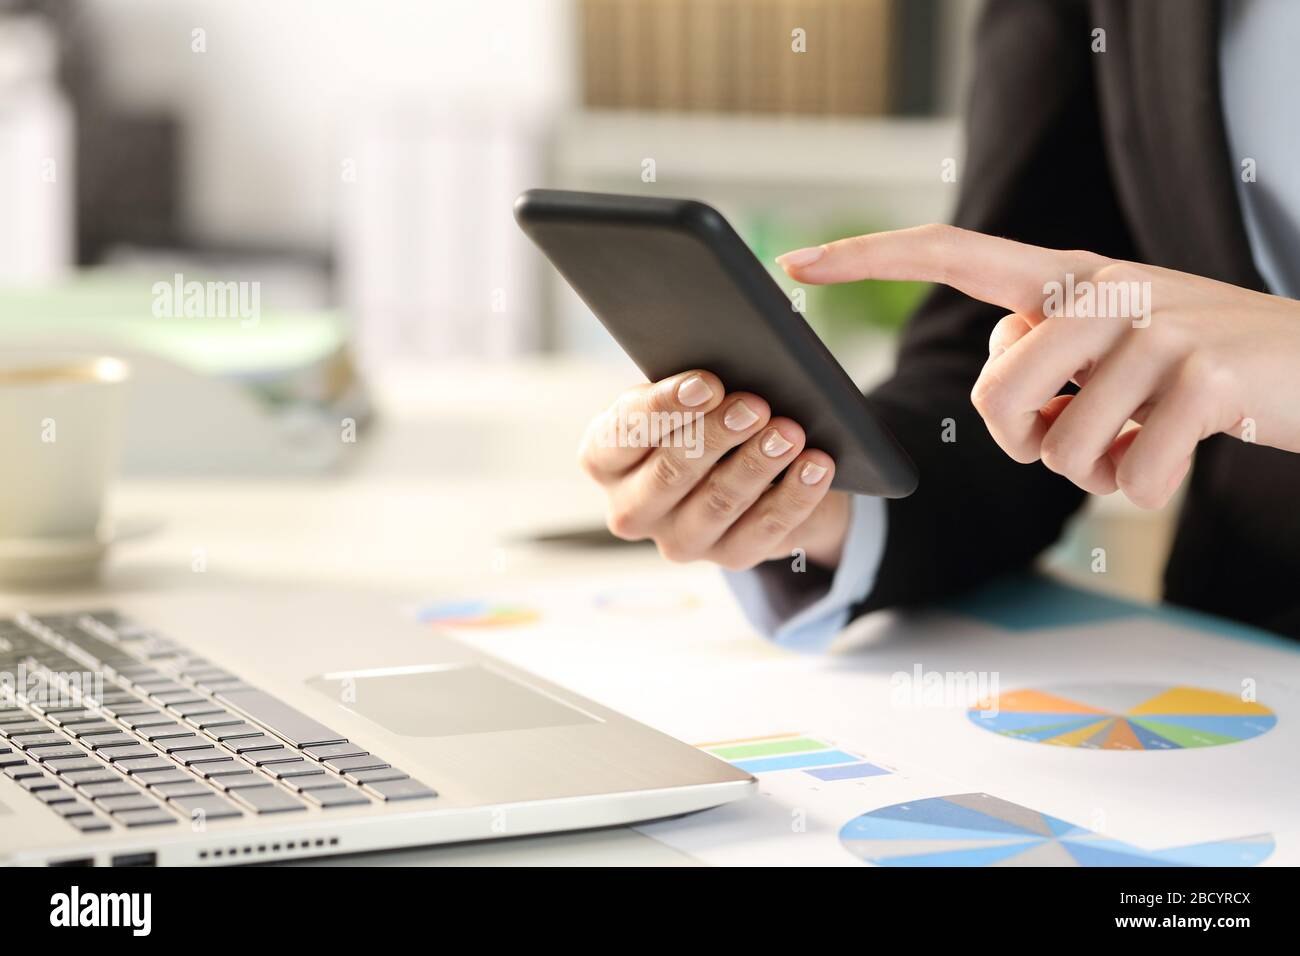 Close up of business woman hands checking smart phone on a desk at the office Stock Photo